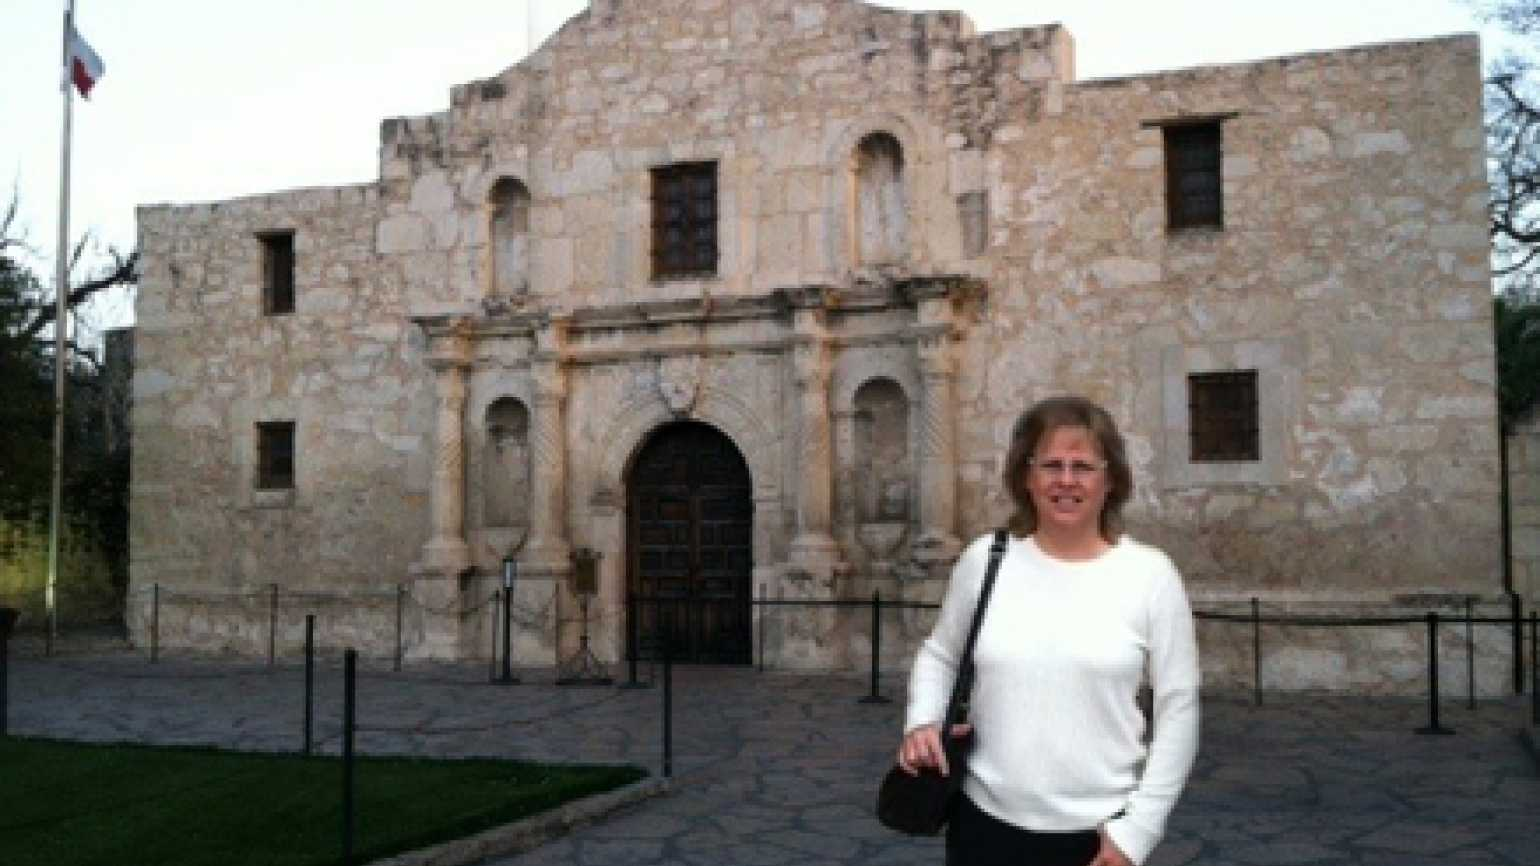 Author Janelle Mowery in front of the Alamo